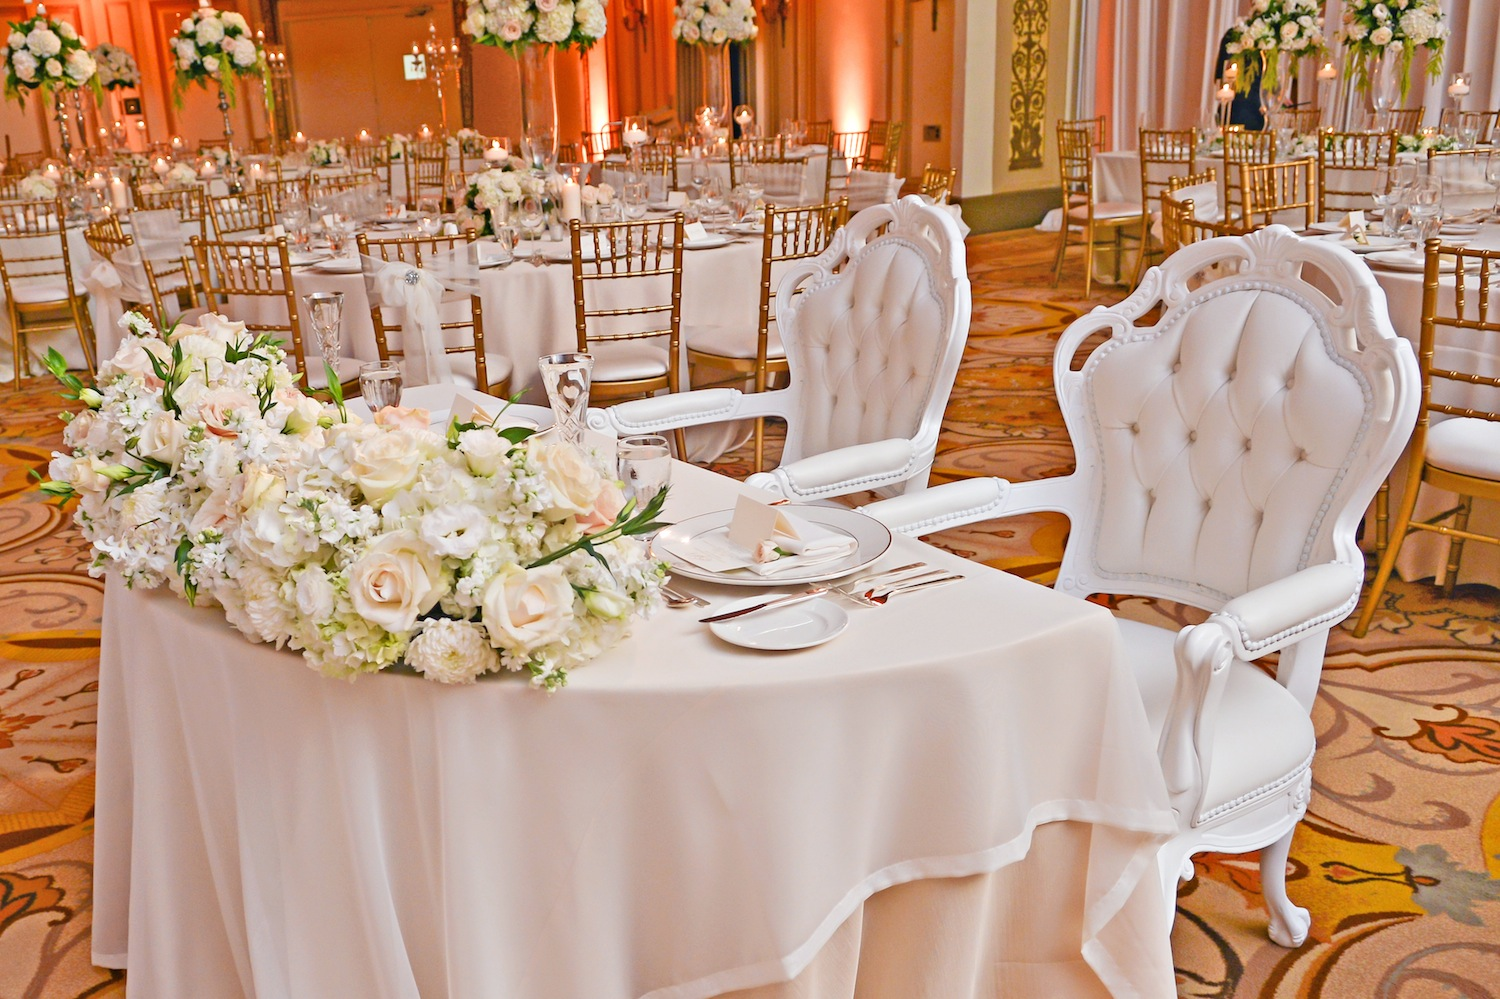 Wedding Chair Rentals Tufted Furniture Rentals Give Your Wedding A Glam Look